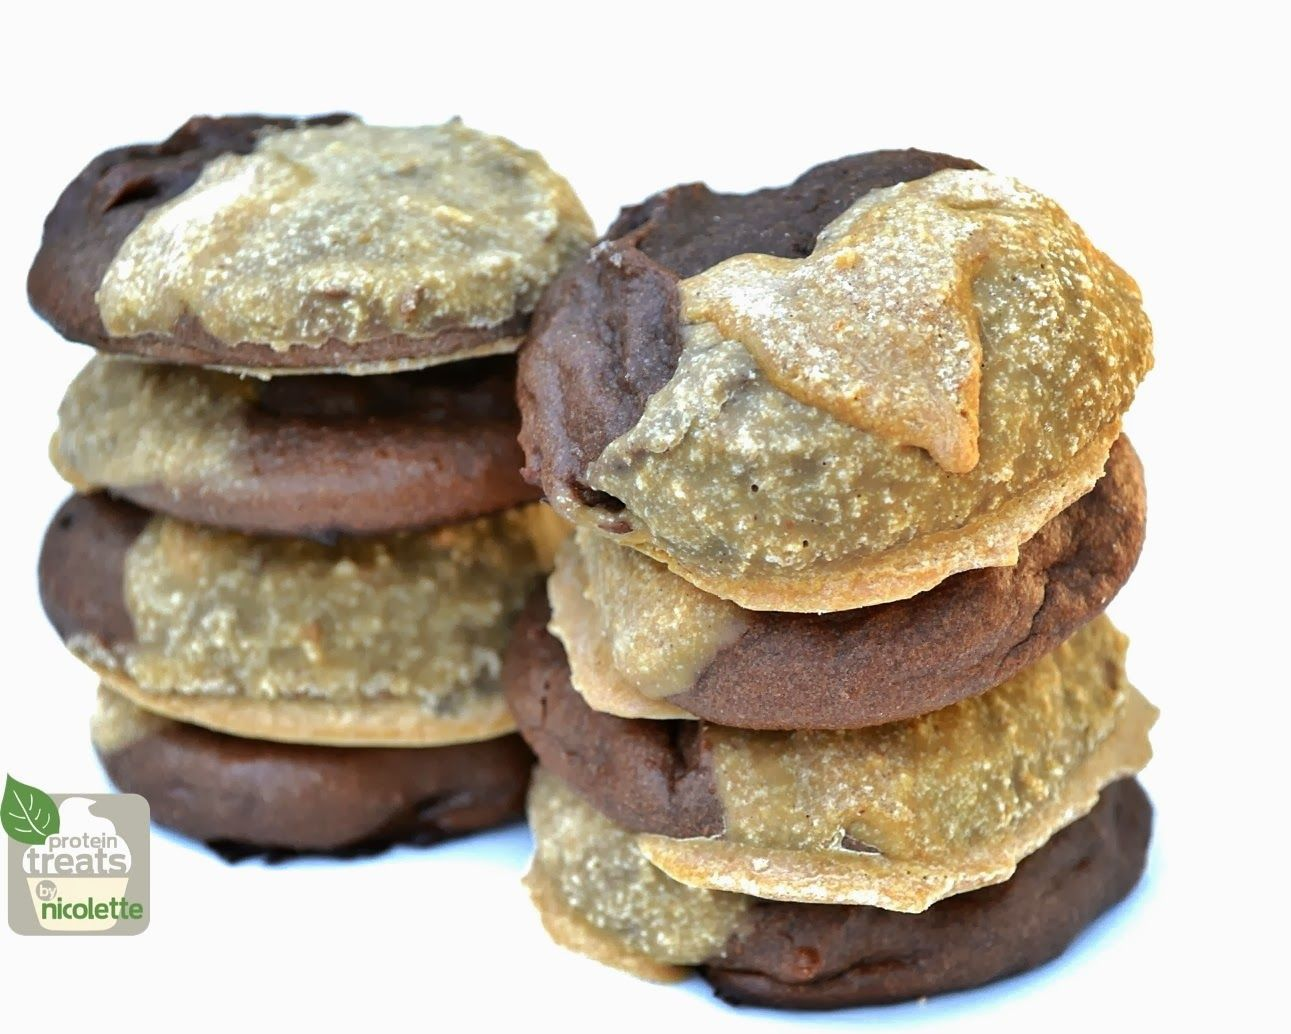 Protein Treats By Nicolette : Peanut Butter Coated Chocolate Protein Cookies